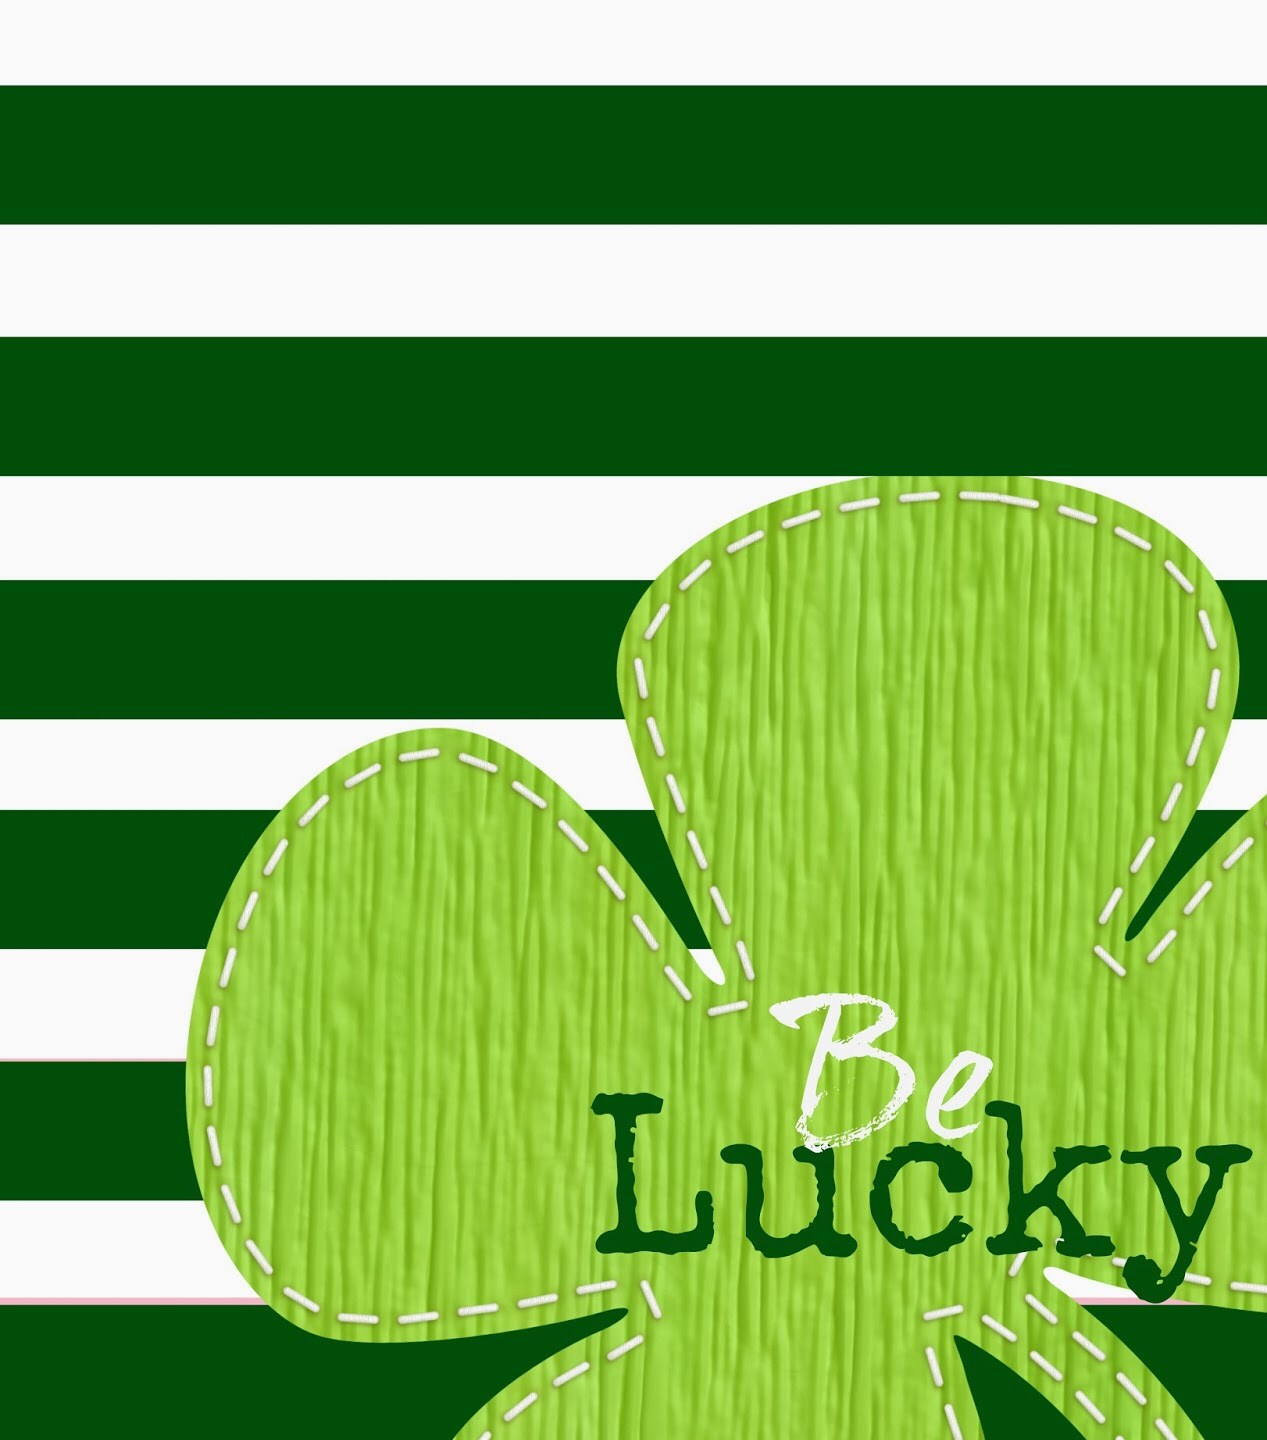 Luck, chance and other influences